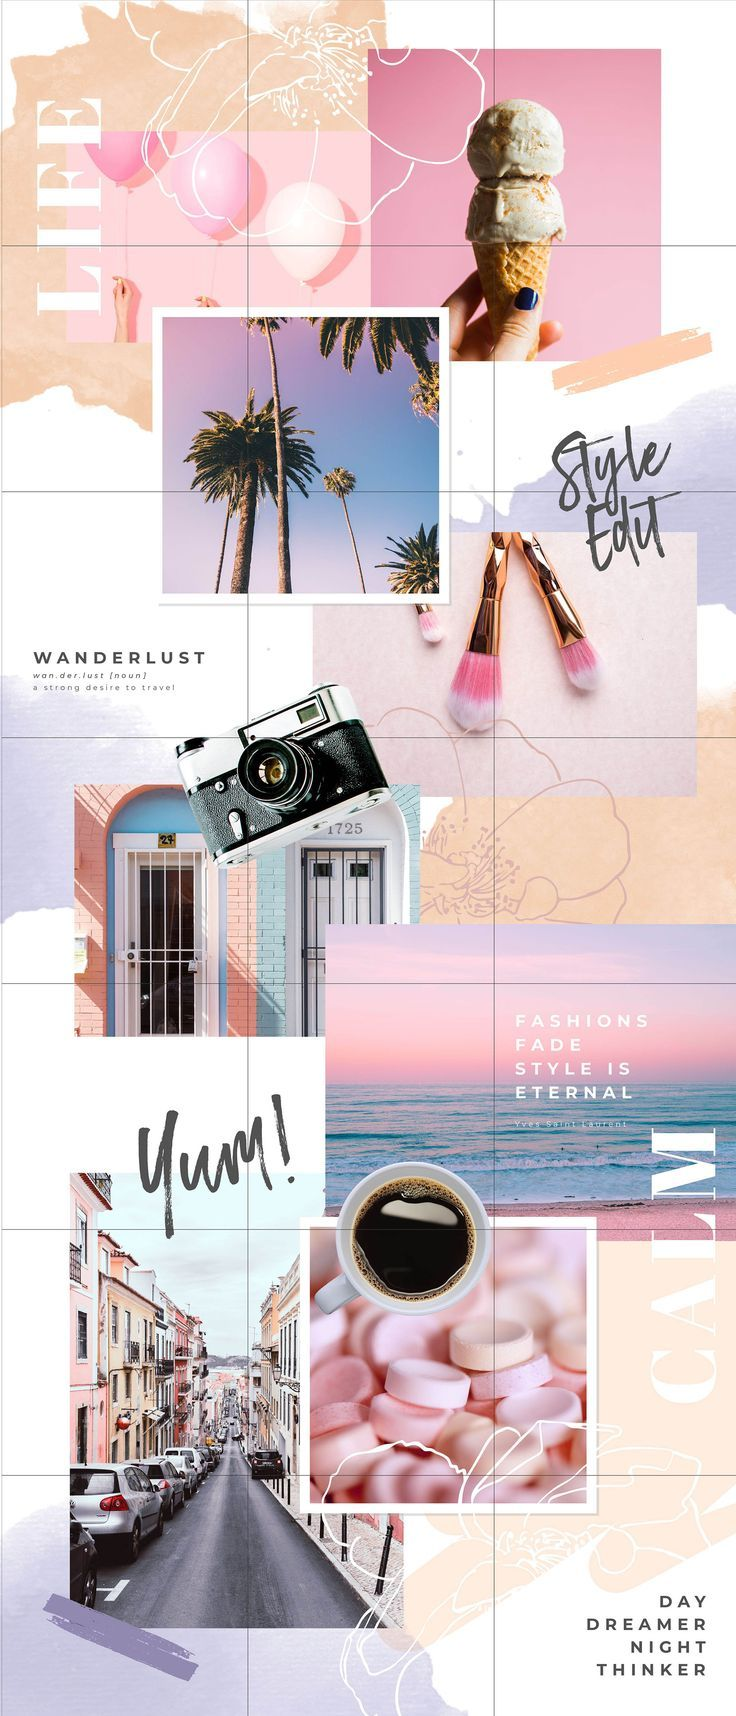 How To Create A Beautiful Instagram Puzzle Feed 5 Free Templates Easil Instagram Feed Layout Instagram Template Design Instagram Grid